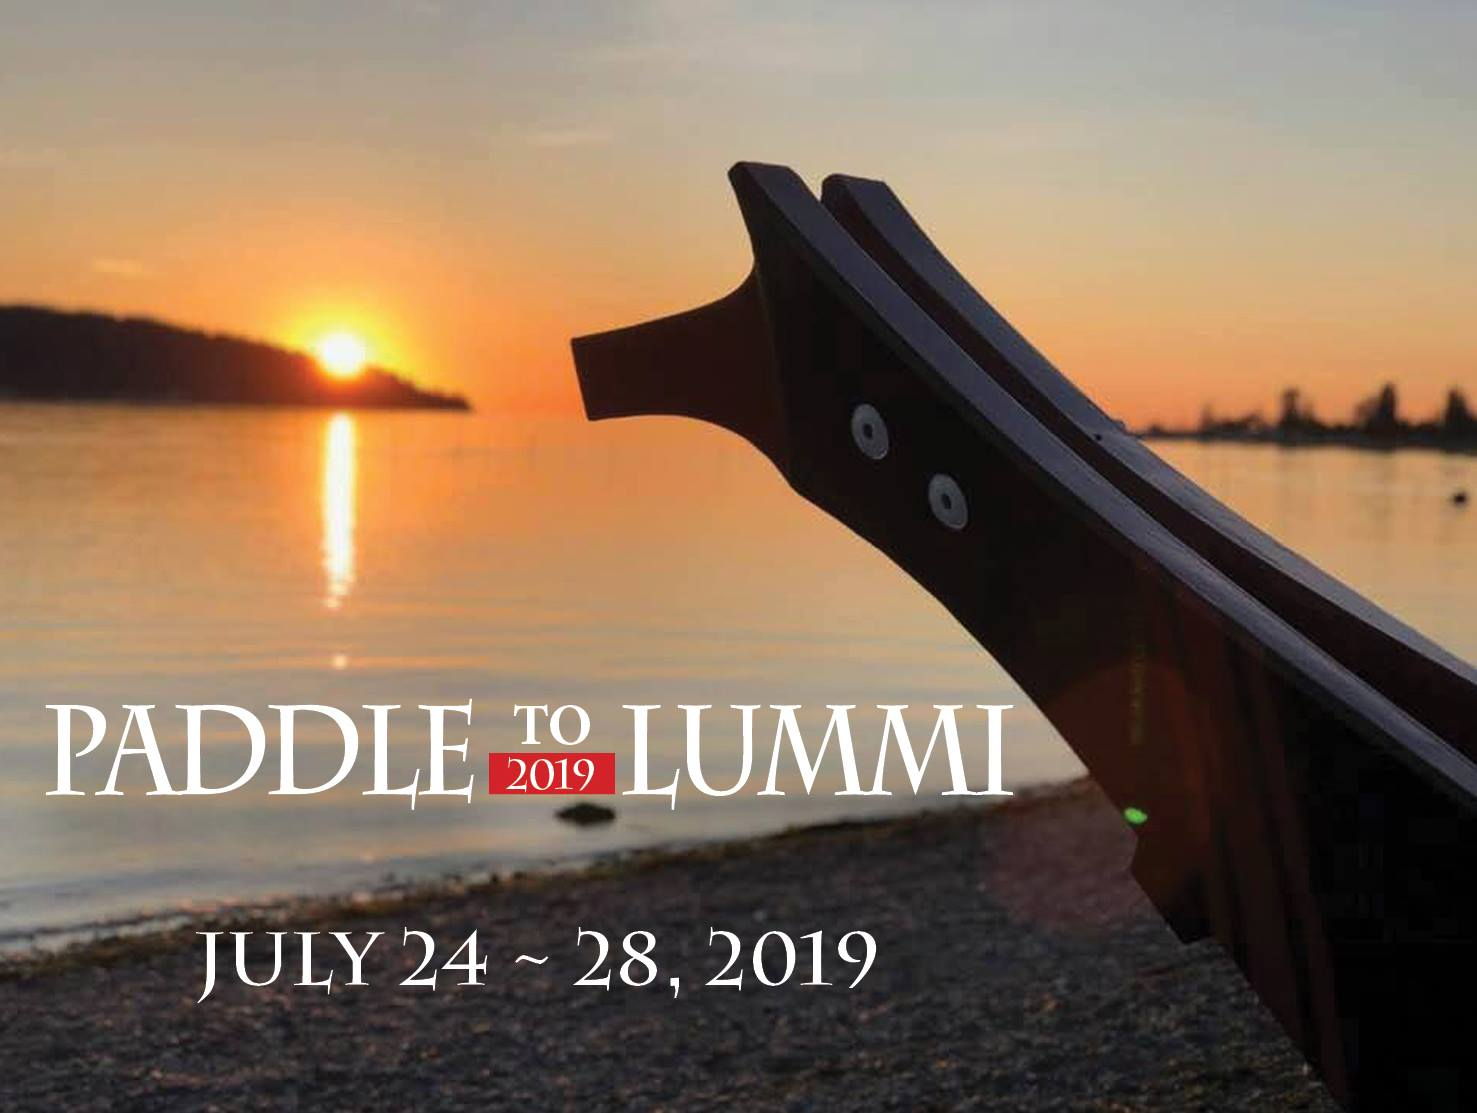 Facebook Event: Paddle to Lummi 2019